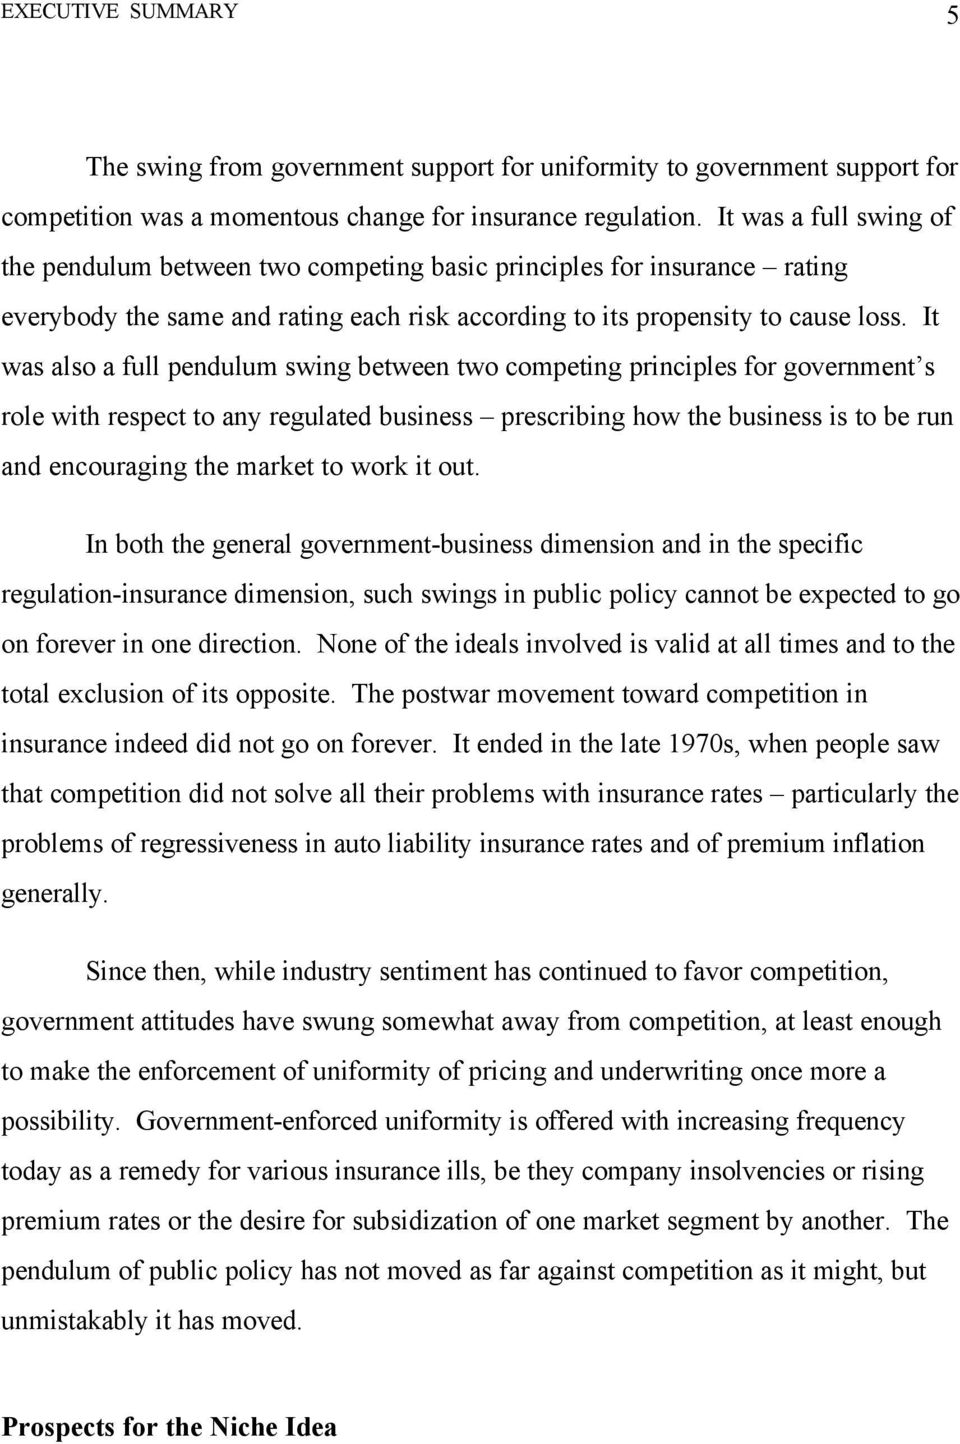 It was also a full pendulum swing between two competing principles for government s role with respect to any regulated business prescribing how the business is to be run and encouraging the market to